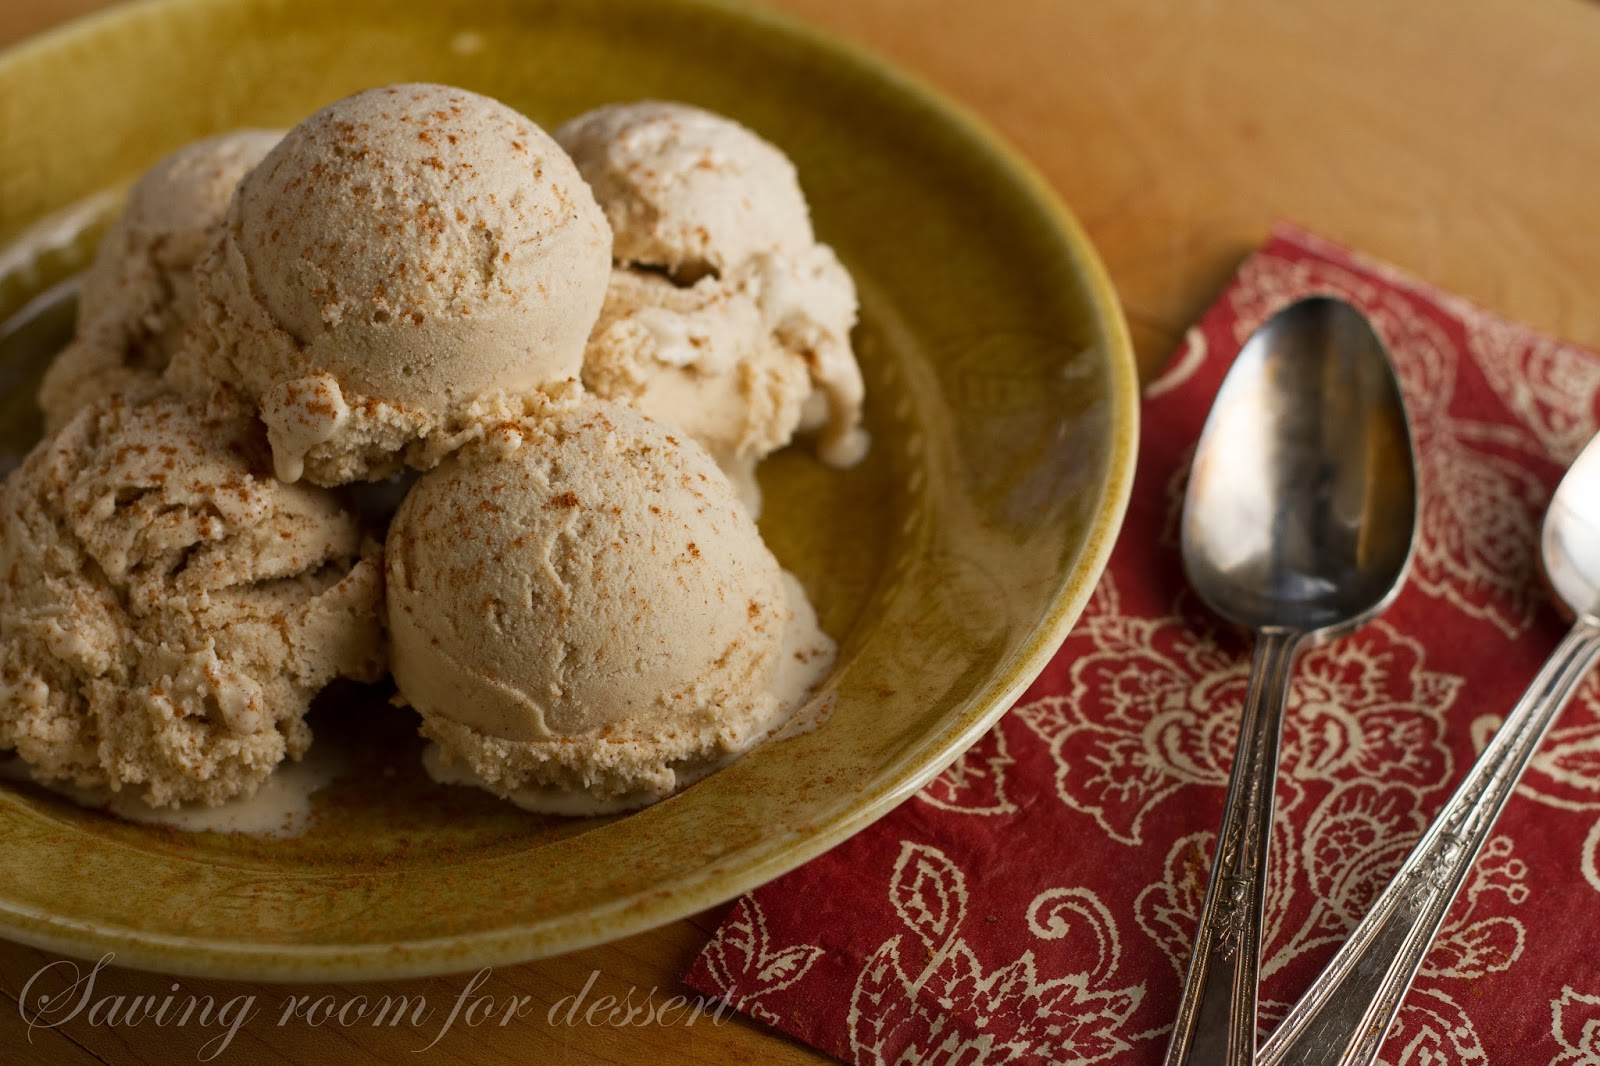 Cinnamon Vanilla Bean Gelato - Saving Room for Dessert